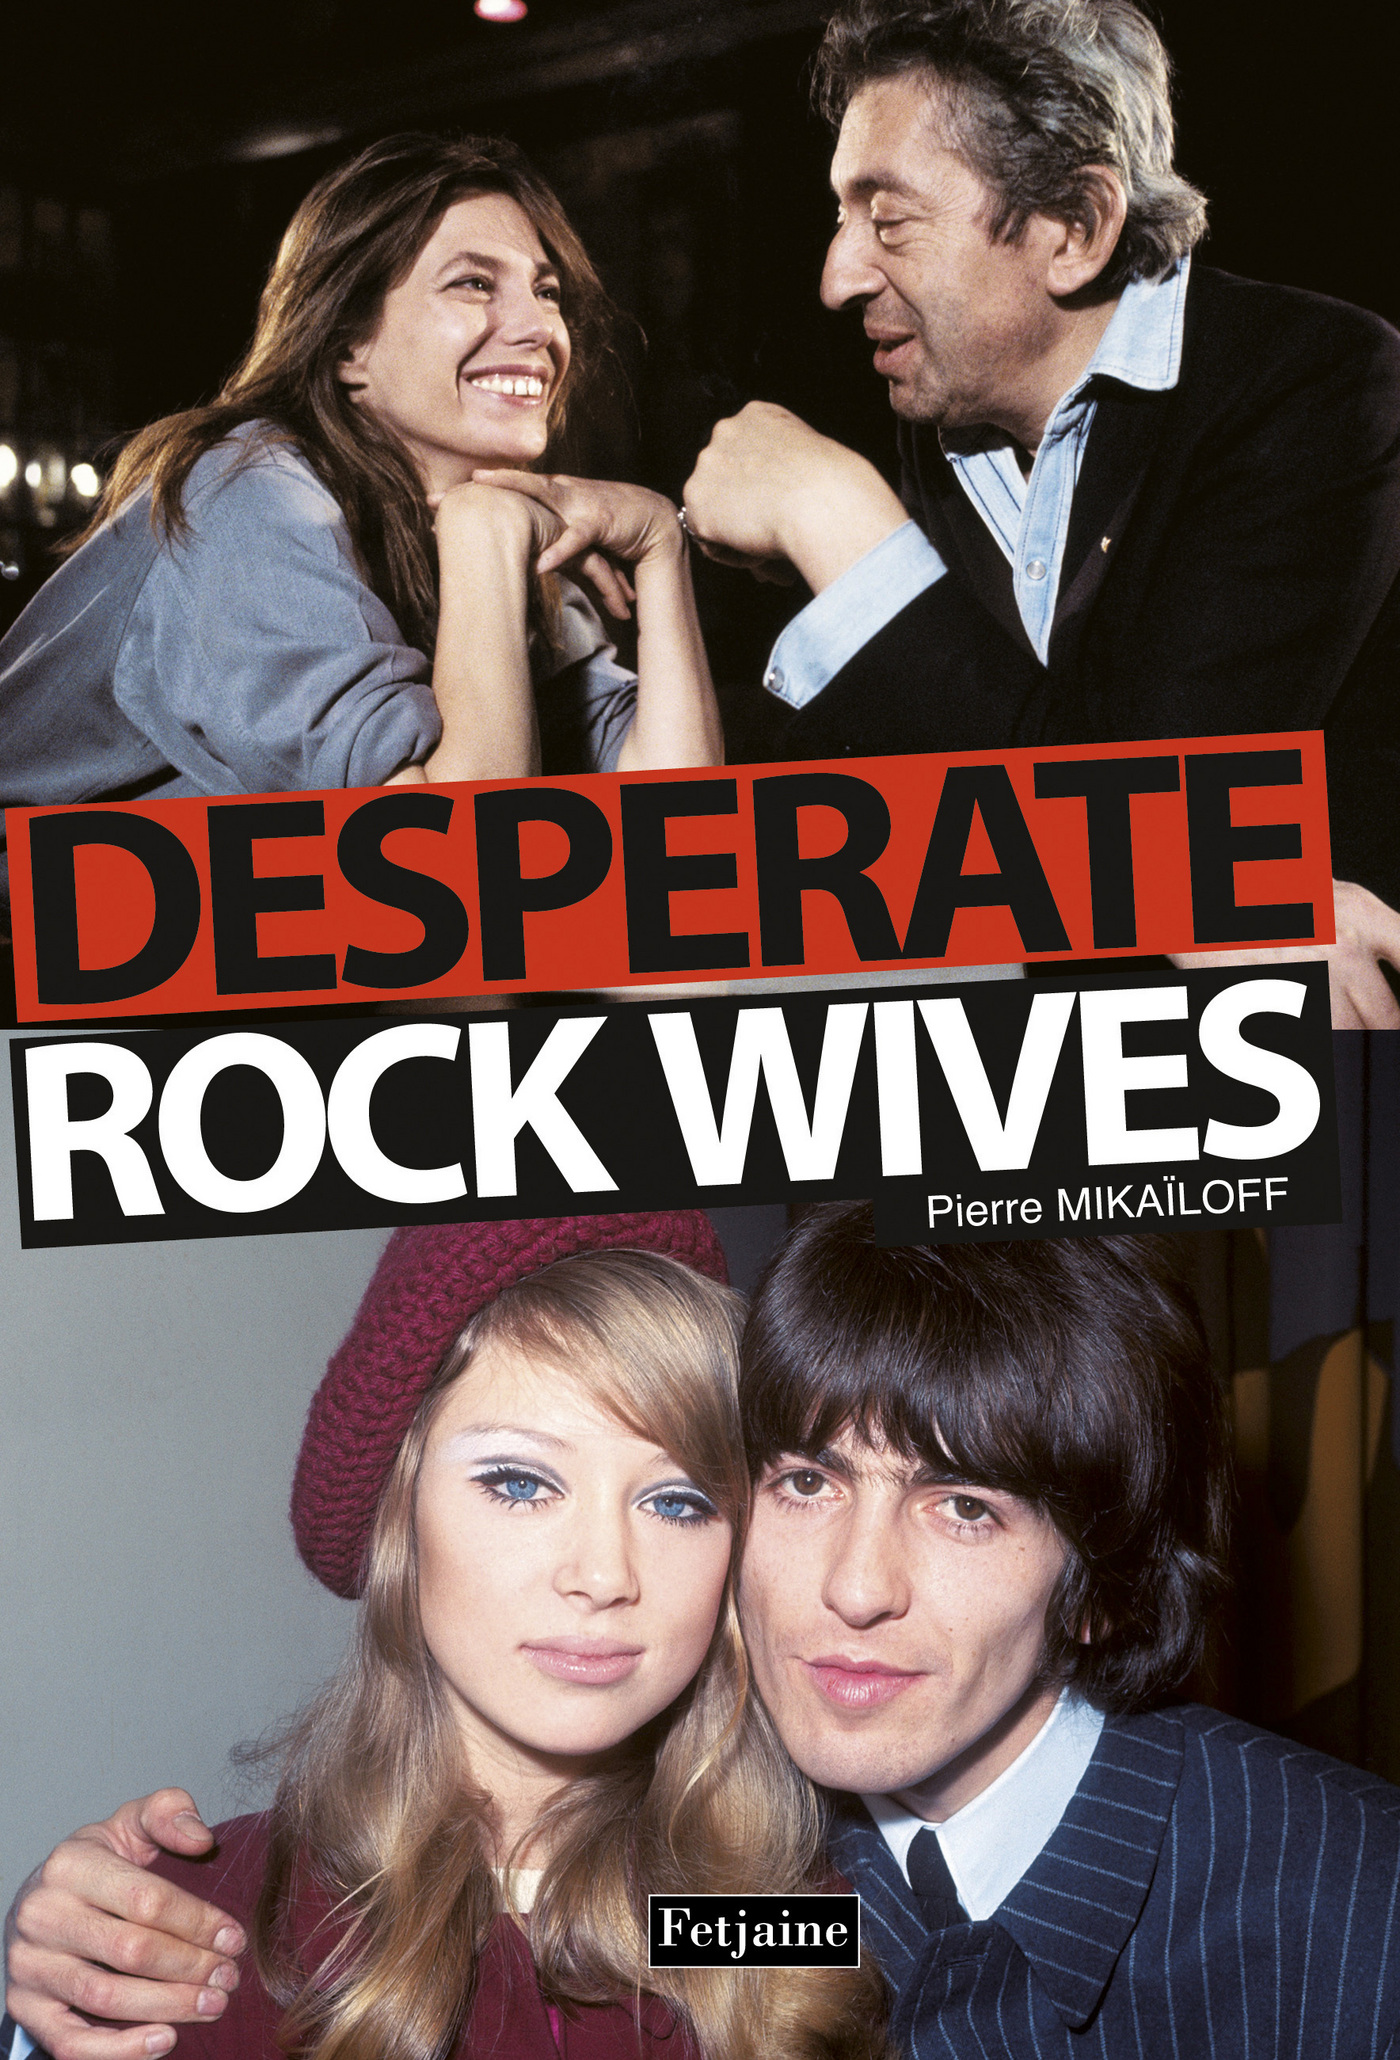 Desperate Rock Wives